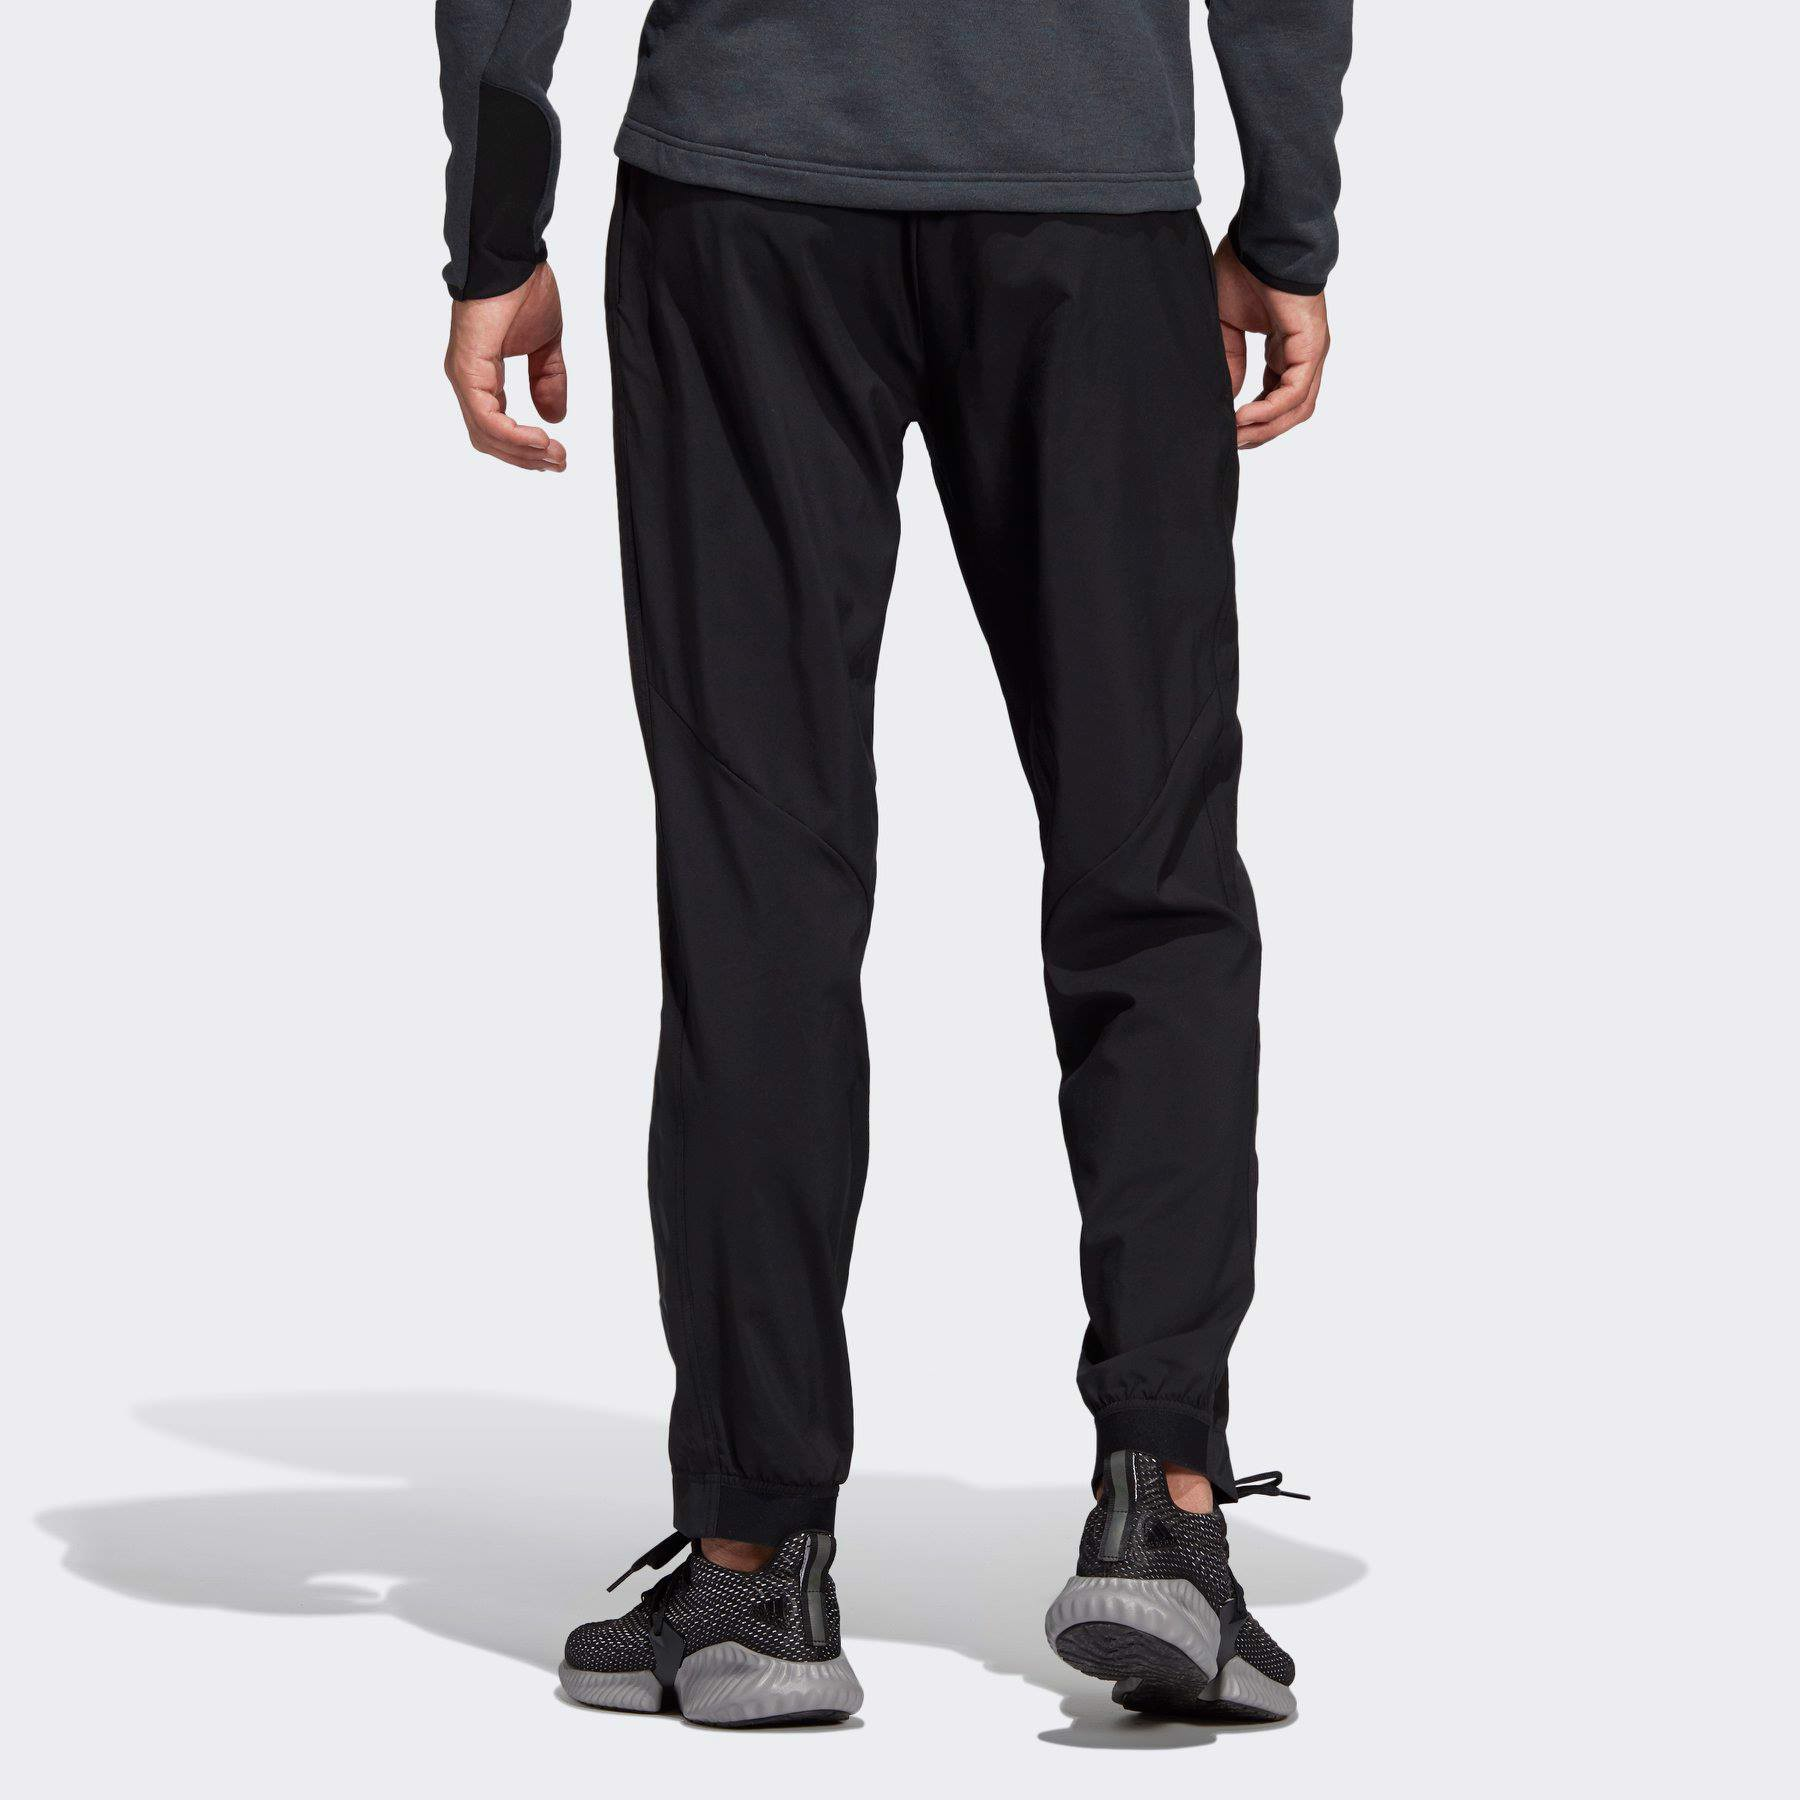 adidas Climacool Workout Joggers 'Black'